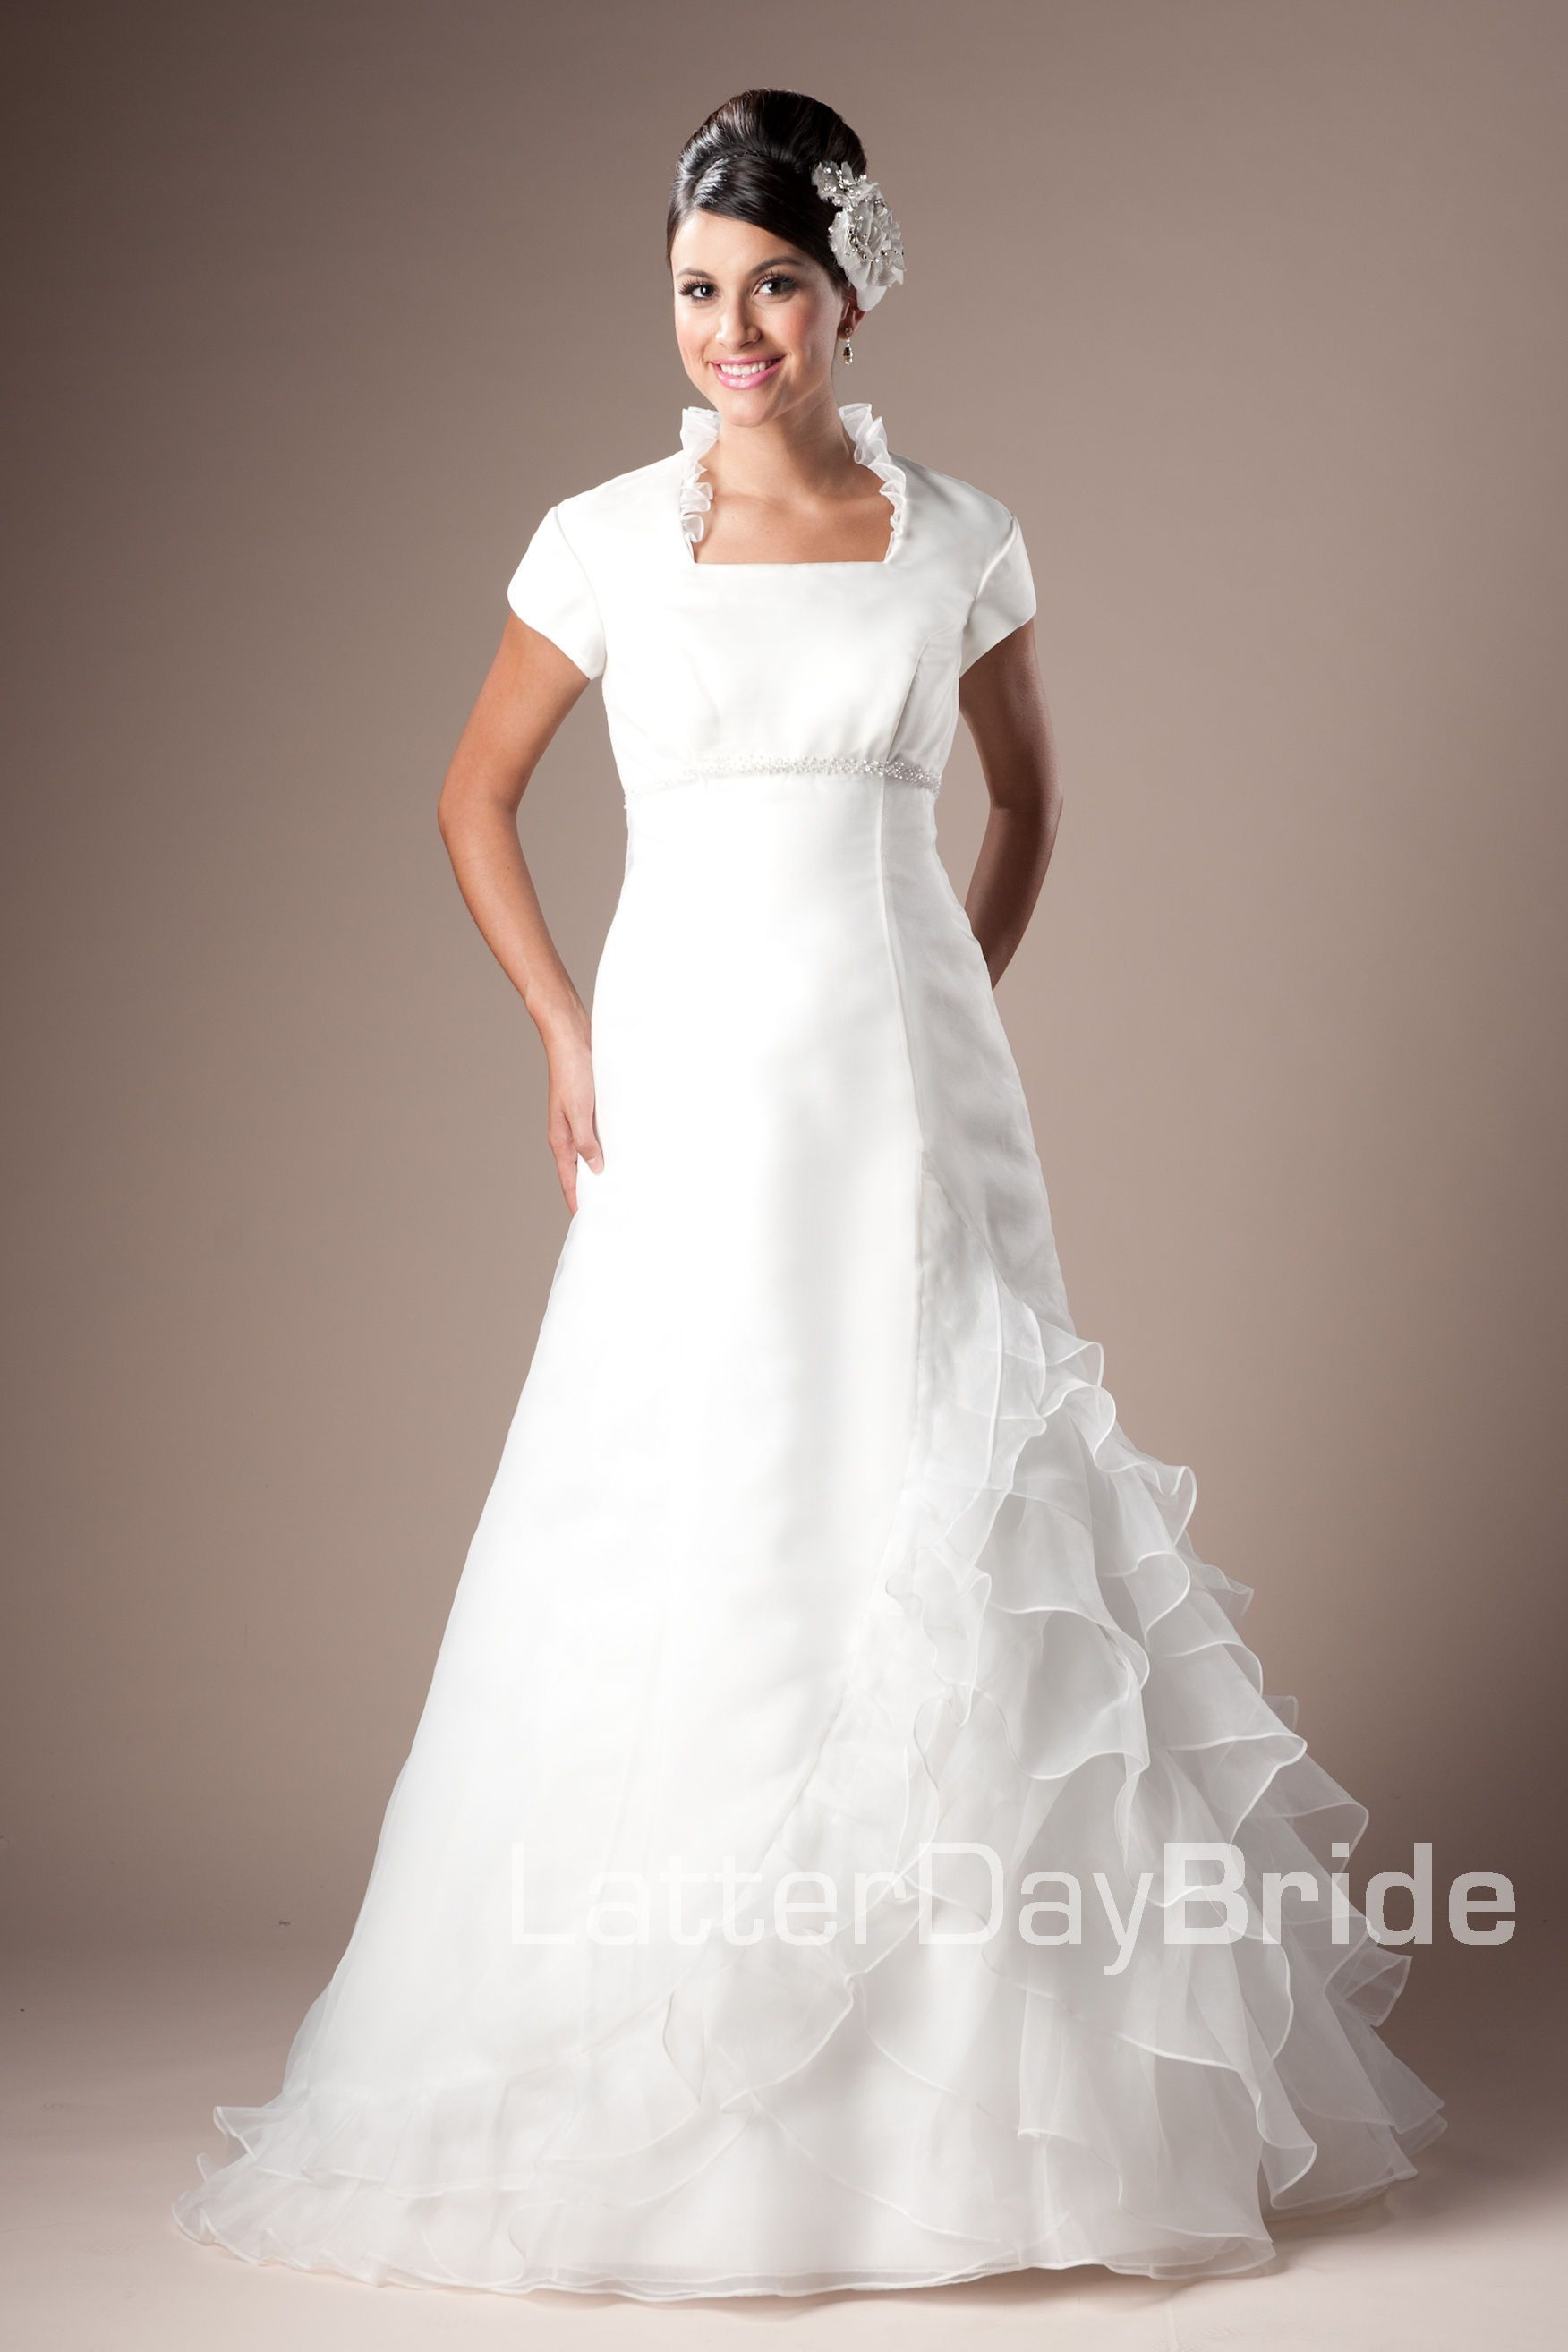 Wedding dress with collar  Modest Wedding Dress Callidora LatterDayBride Love the collar